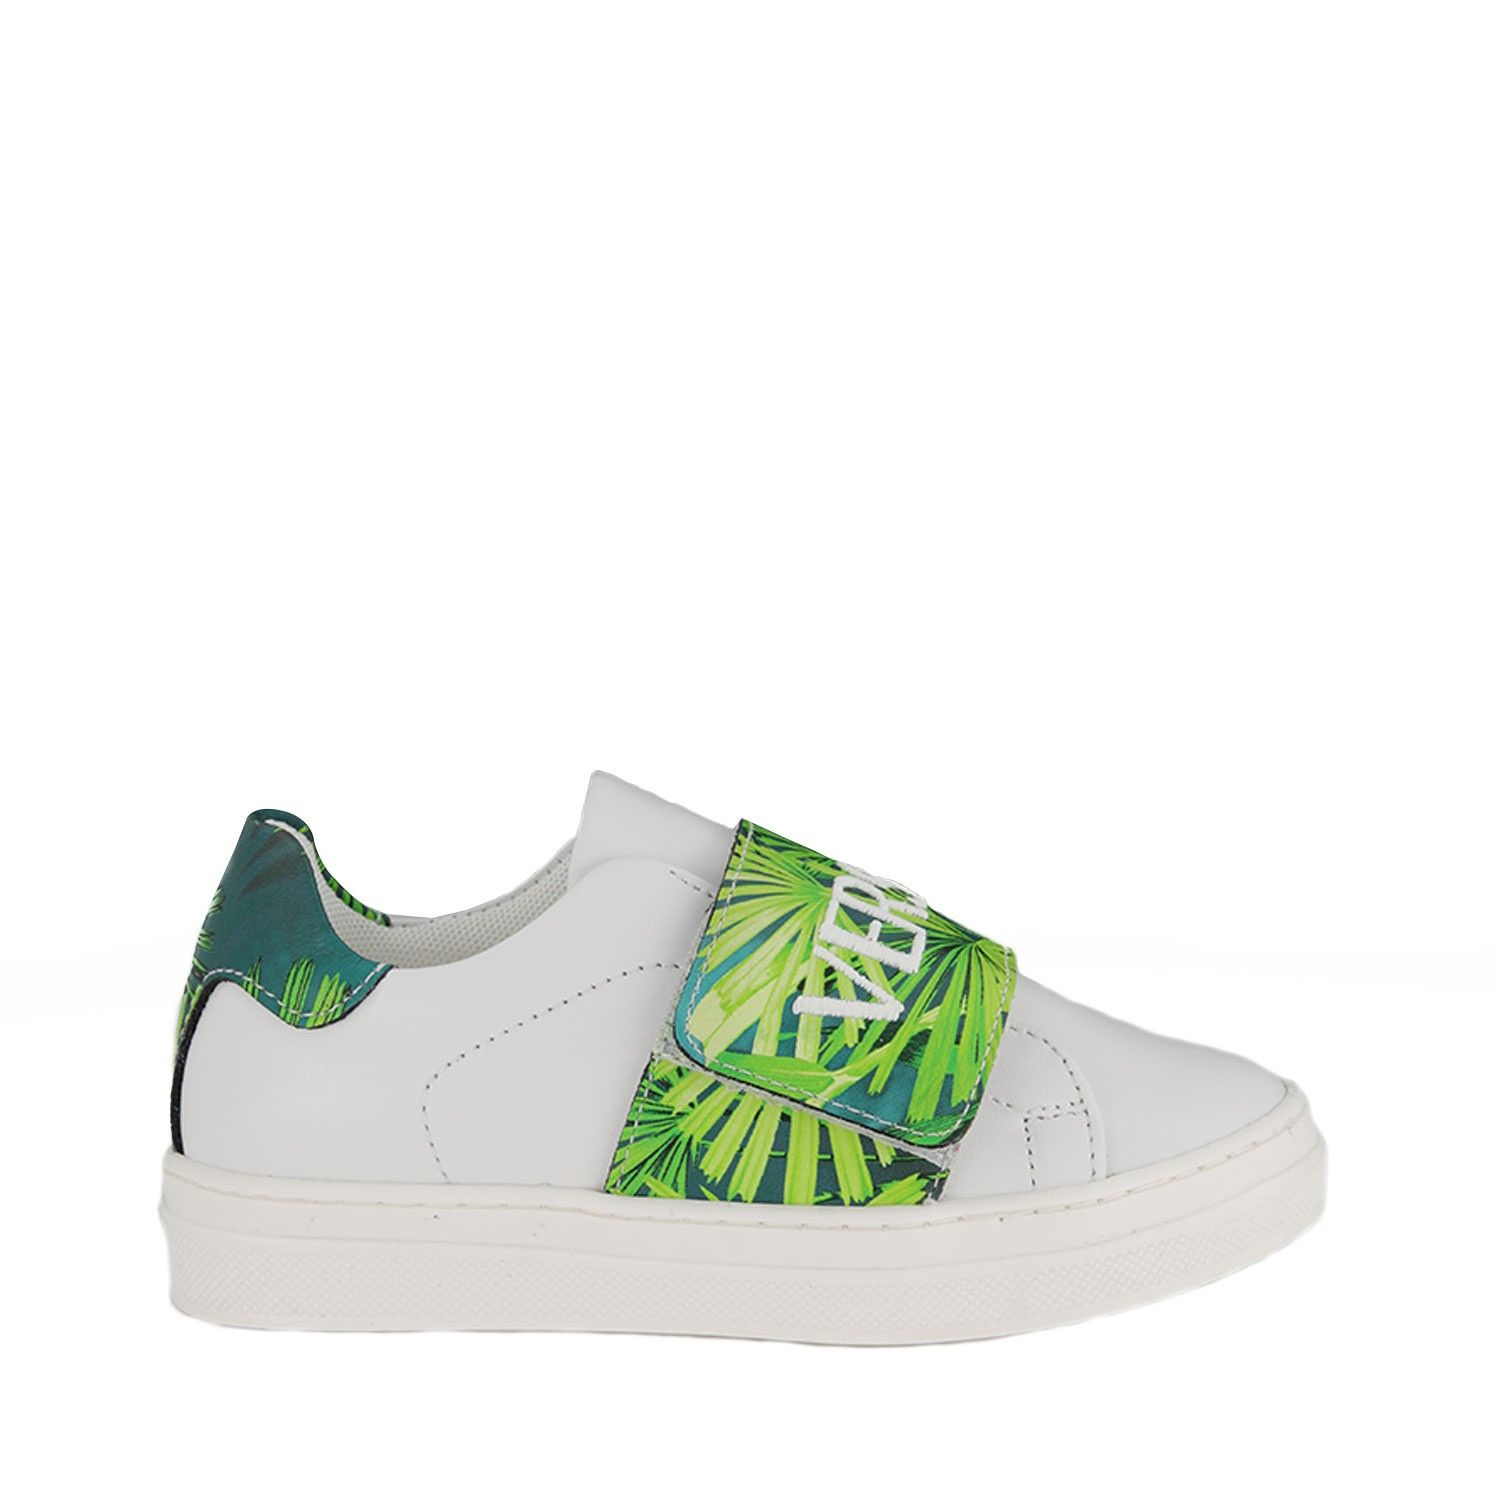 Picture of Versace YHX00010 kids sneakers white